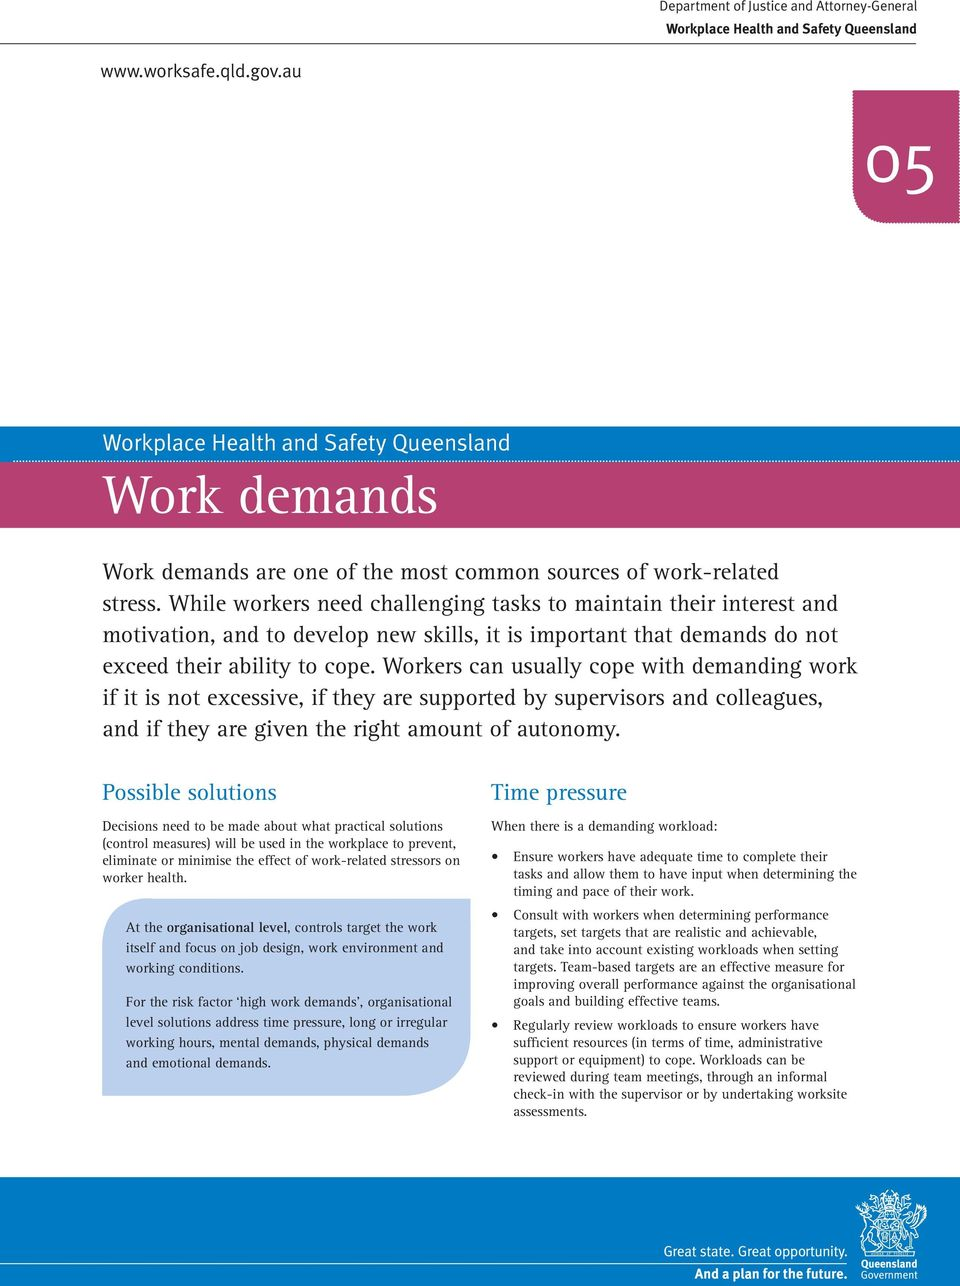 Workers can usually cope with demanding work if it is not excessive, if they are supported by supervisors and colleagues, and if they are given the right amount of autonomy.